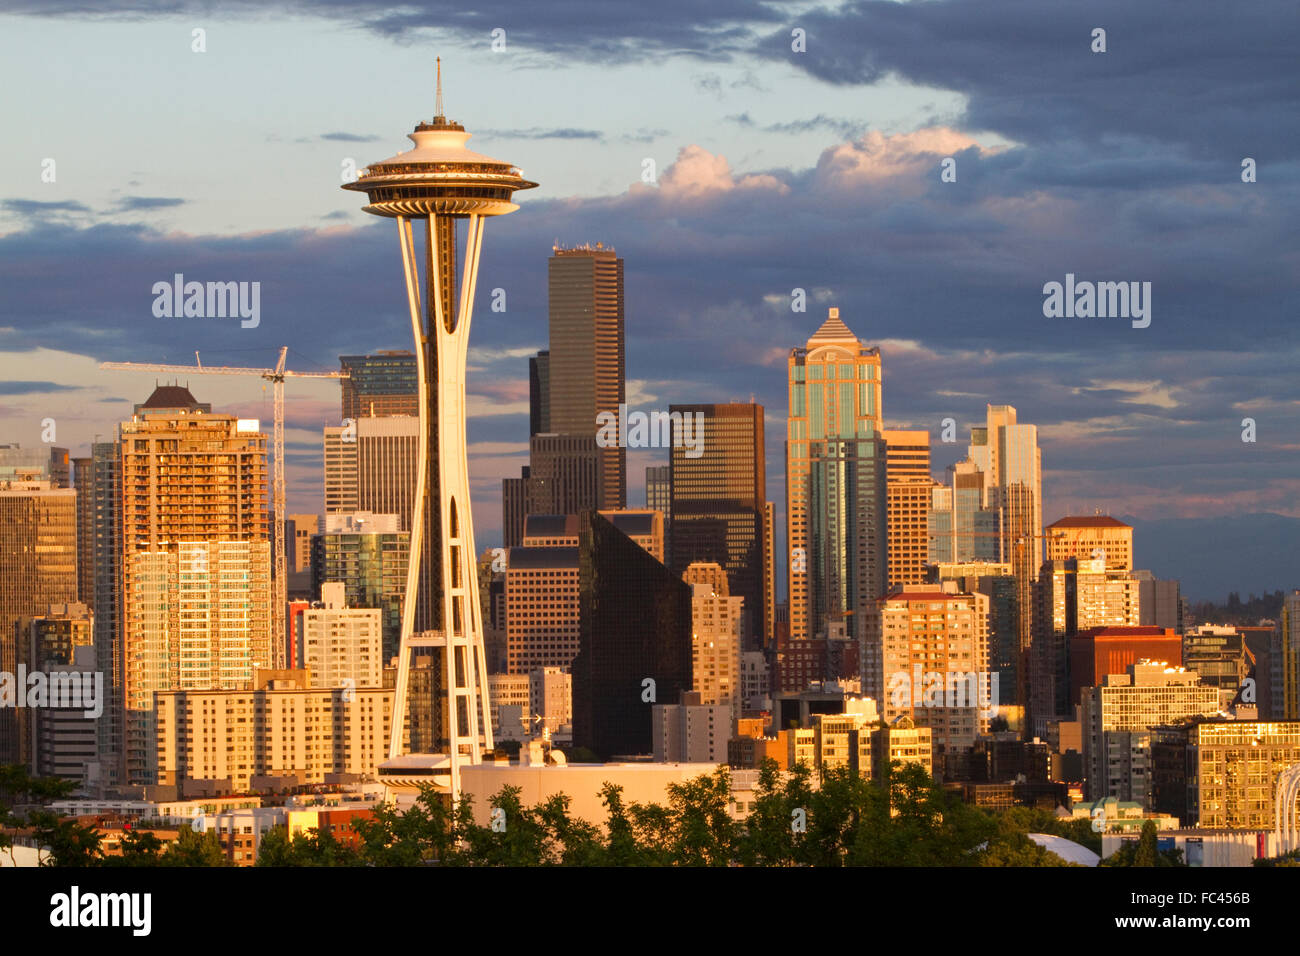 La ciudad de Seattle scape al atardecer con Space Needle, Washington, EE.UU. Imagen De Stock